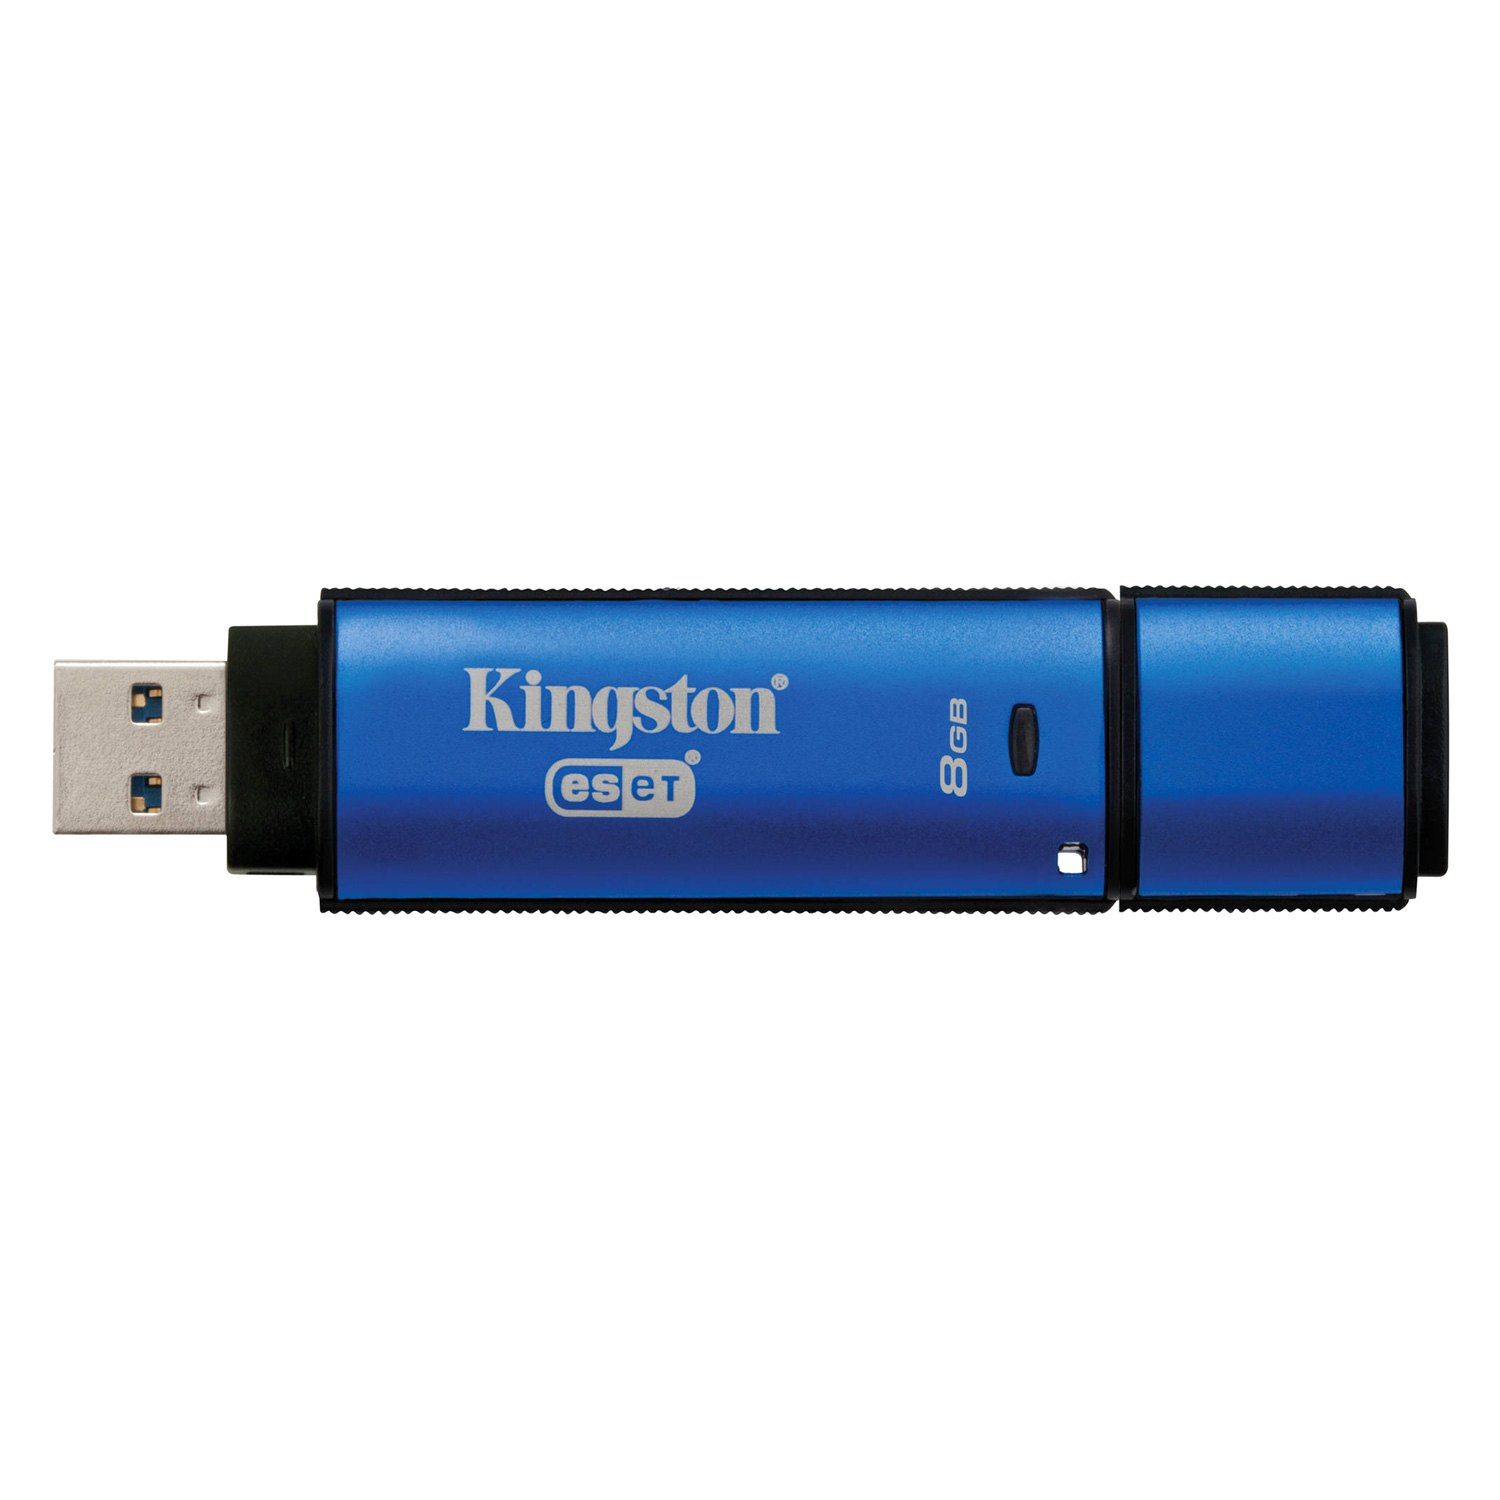 Kingston DataTraveler Vault Privacy 8 GB Blue USB 3 0 Flash Drive with Anti